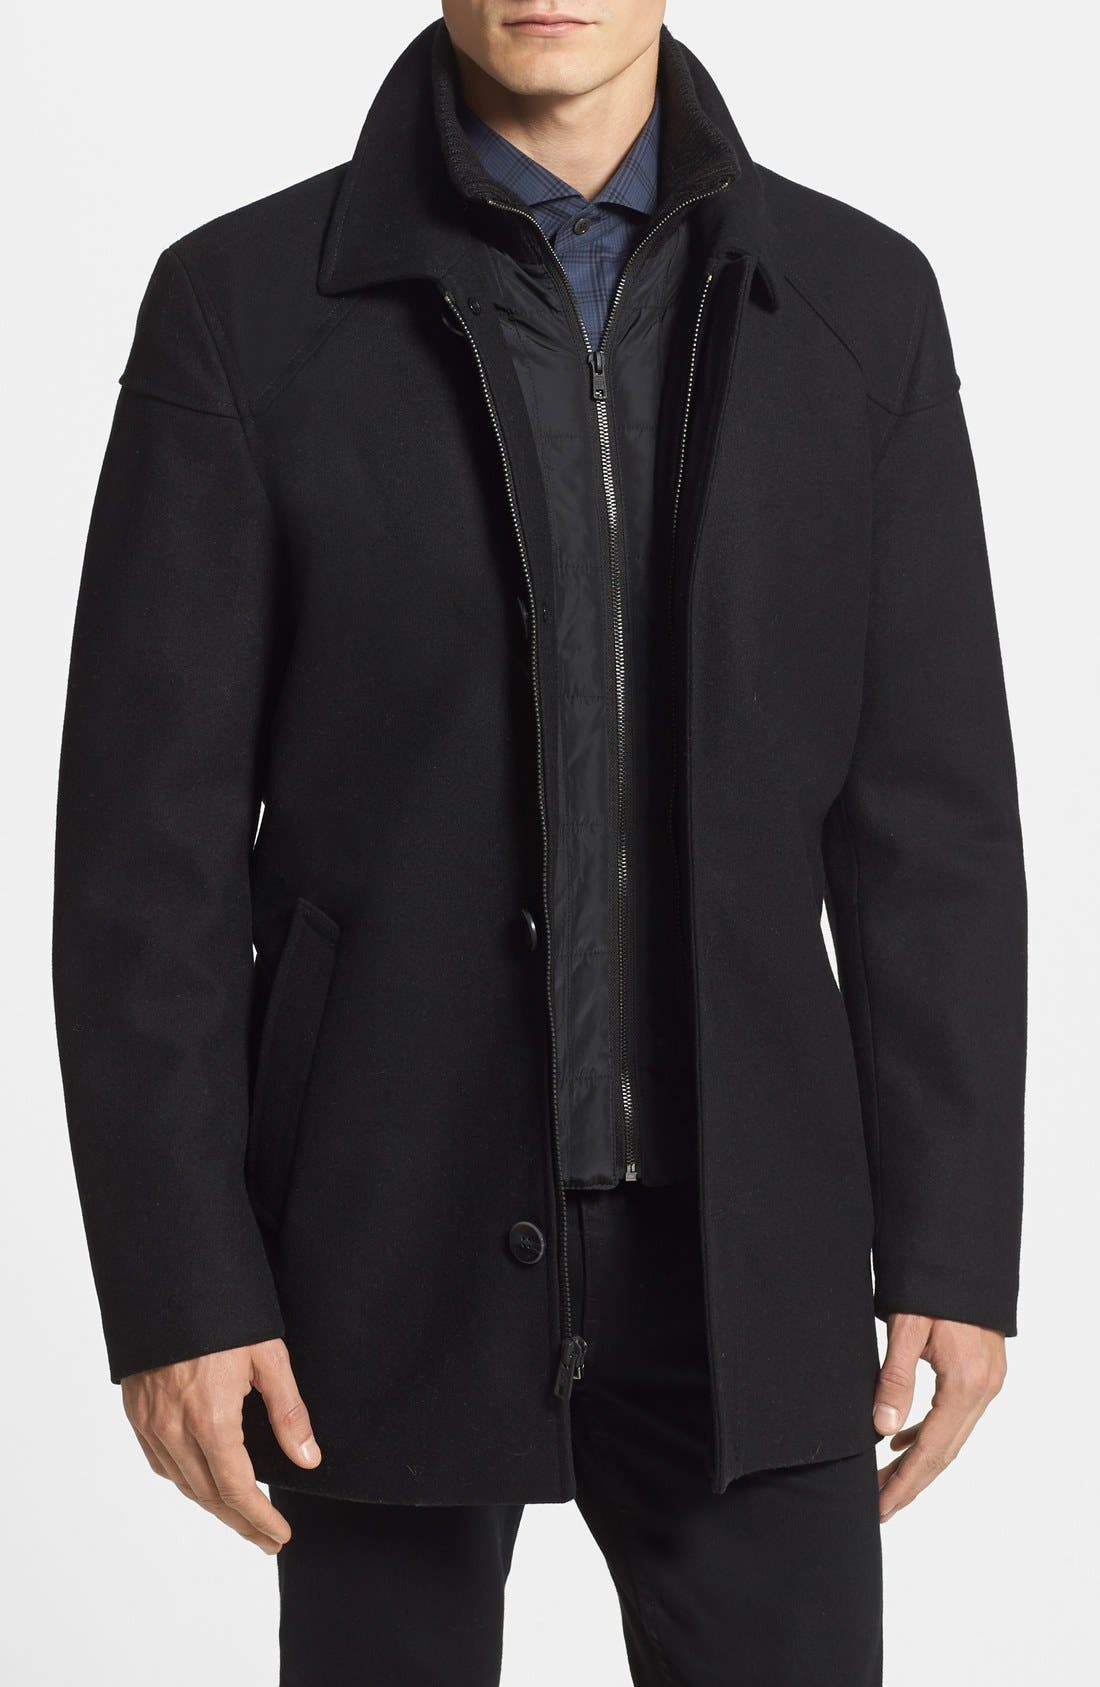 Alternate Image 1 Selected - Vince Camuto Melton Car Coat with Removable Bib